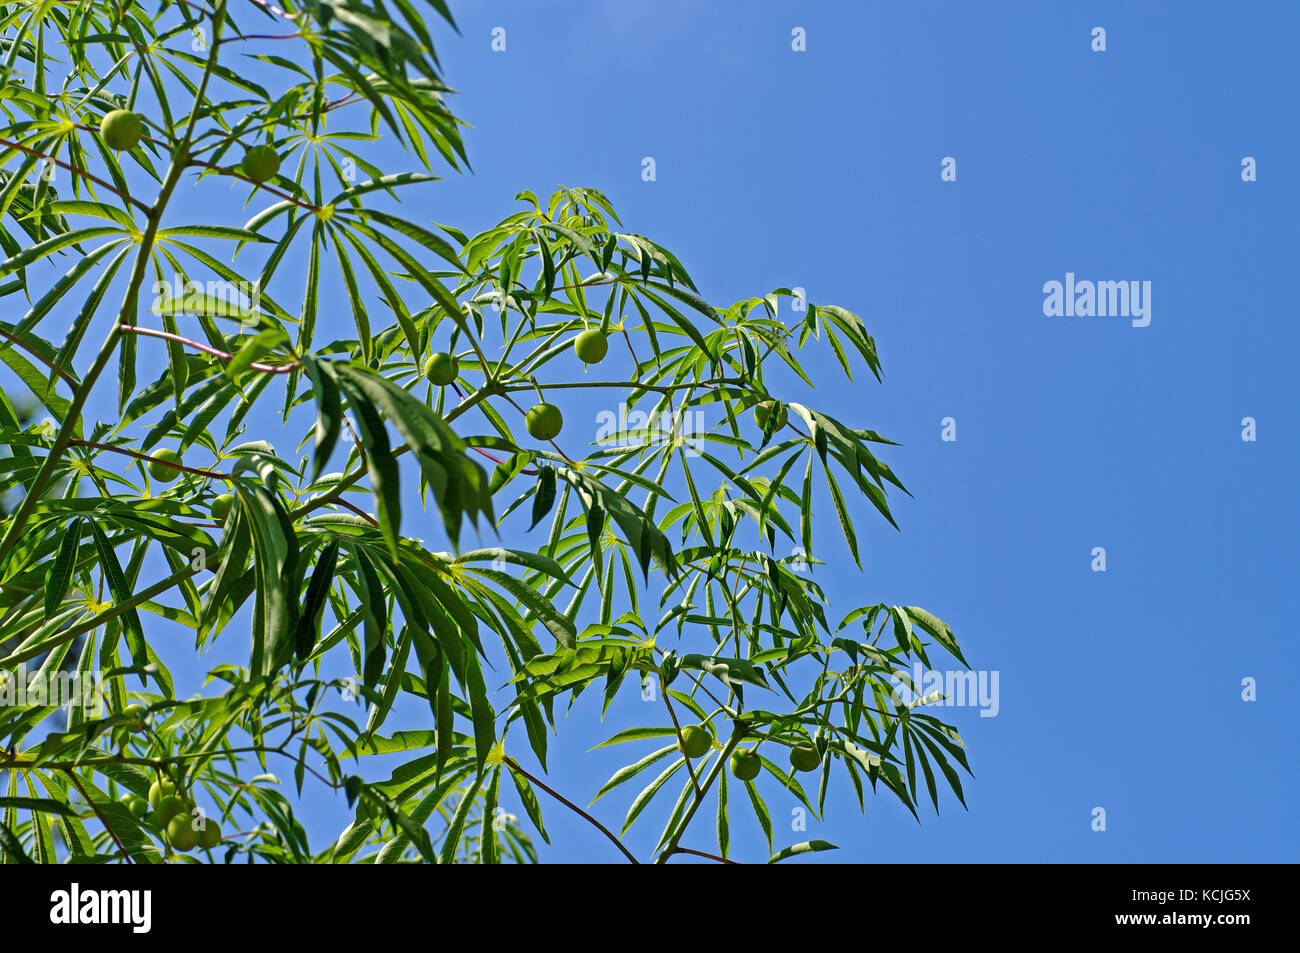 this is Manihot esculenta, the Cassava, crowing also in Europe (Fondi, Italy) - Stock Image